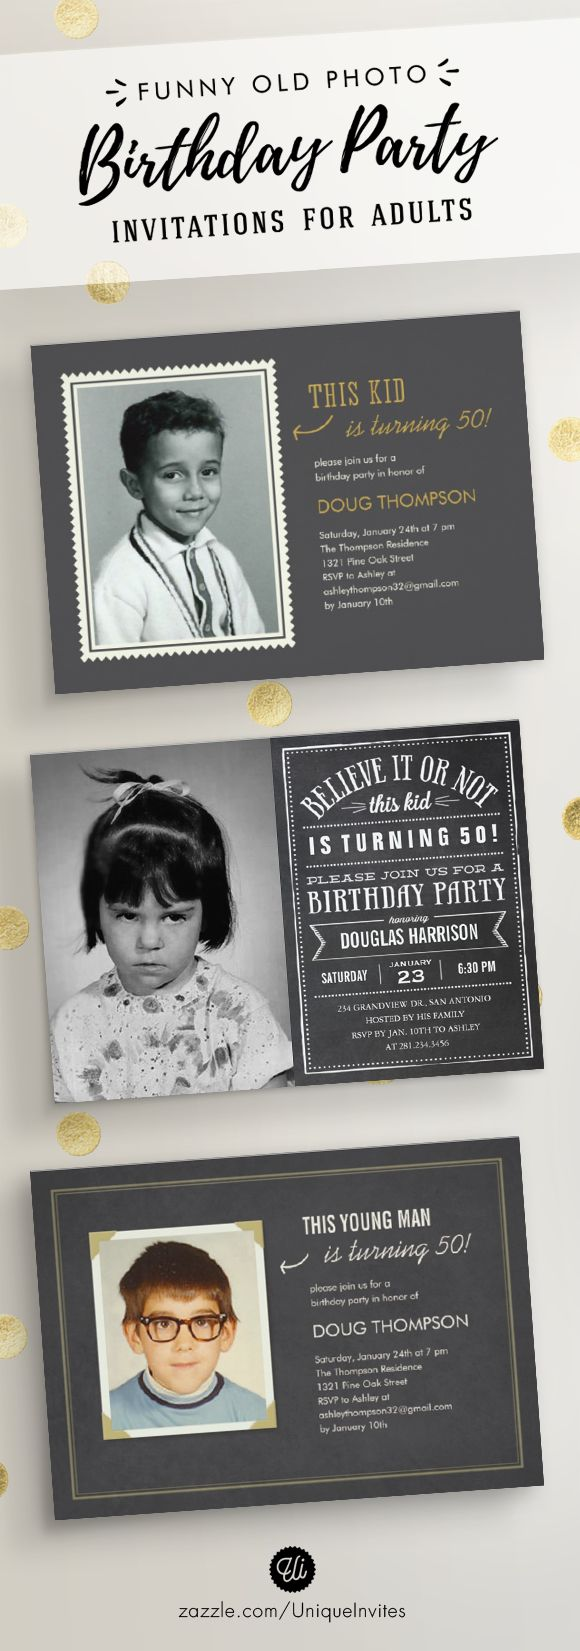 The 25 best funny birthday invitations ideas on pinterest 30th funny old photo birthday party invitations for adults stopboris Image collections